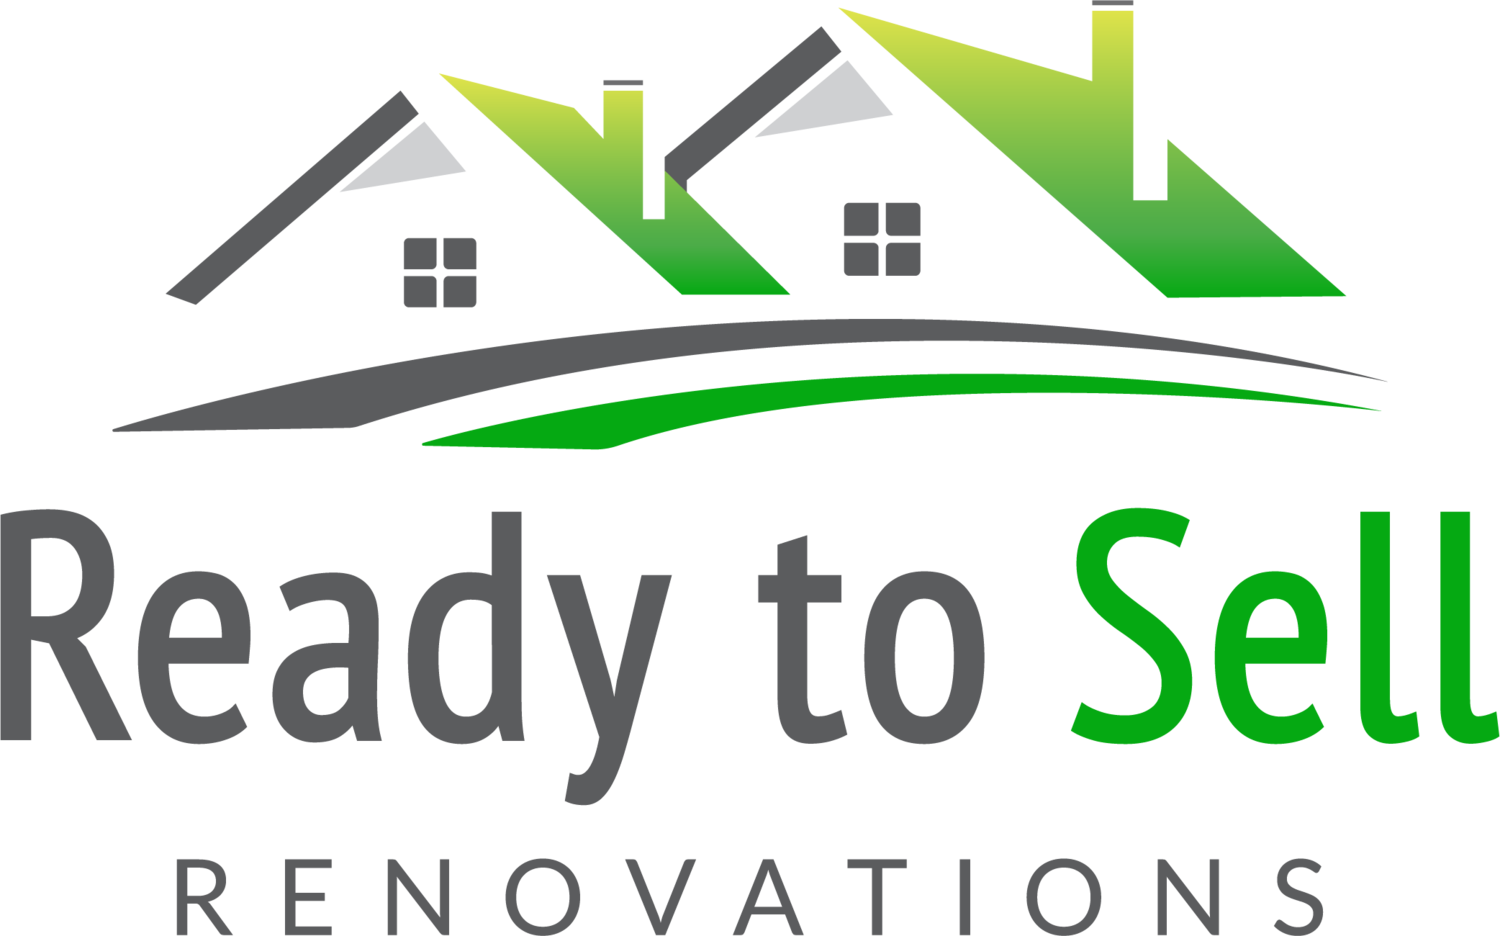 Ready to Sell Renovations - Maryland's Premier Choice for Home Remodeling and Home Improvements